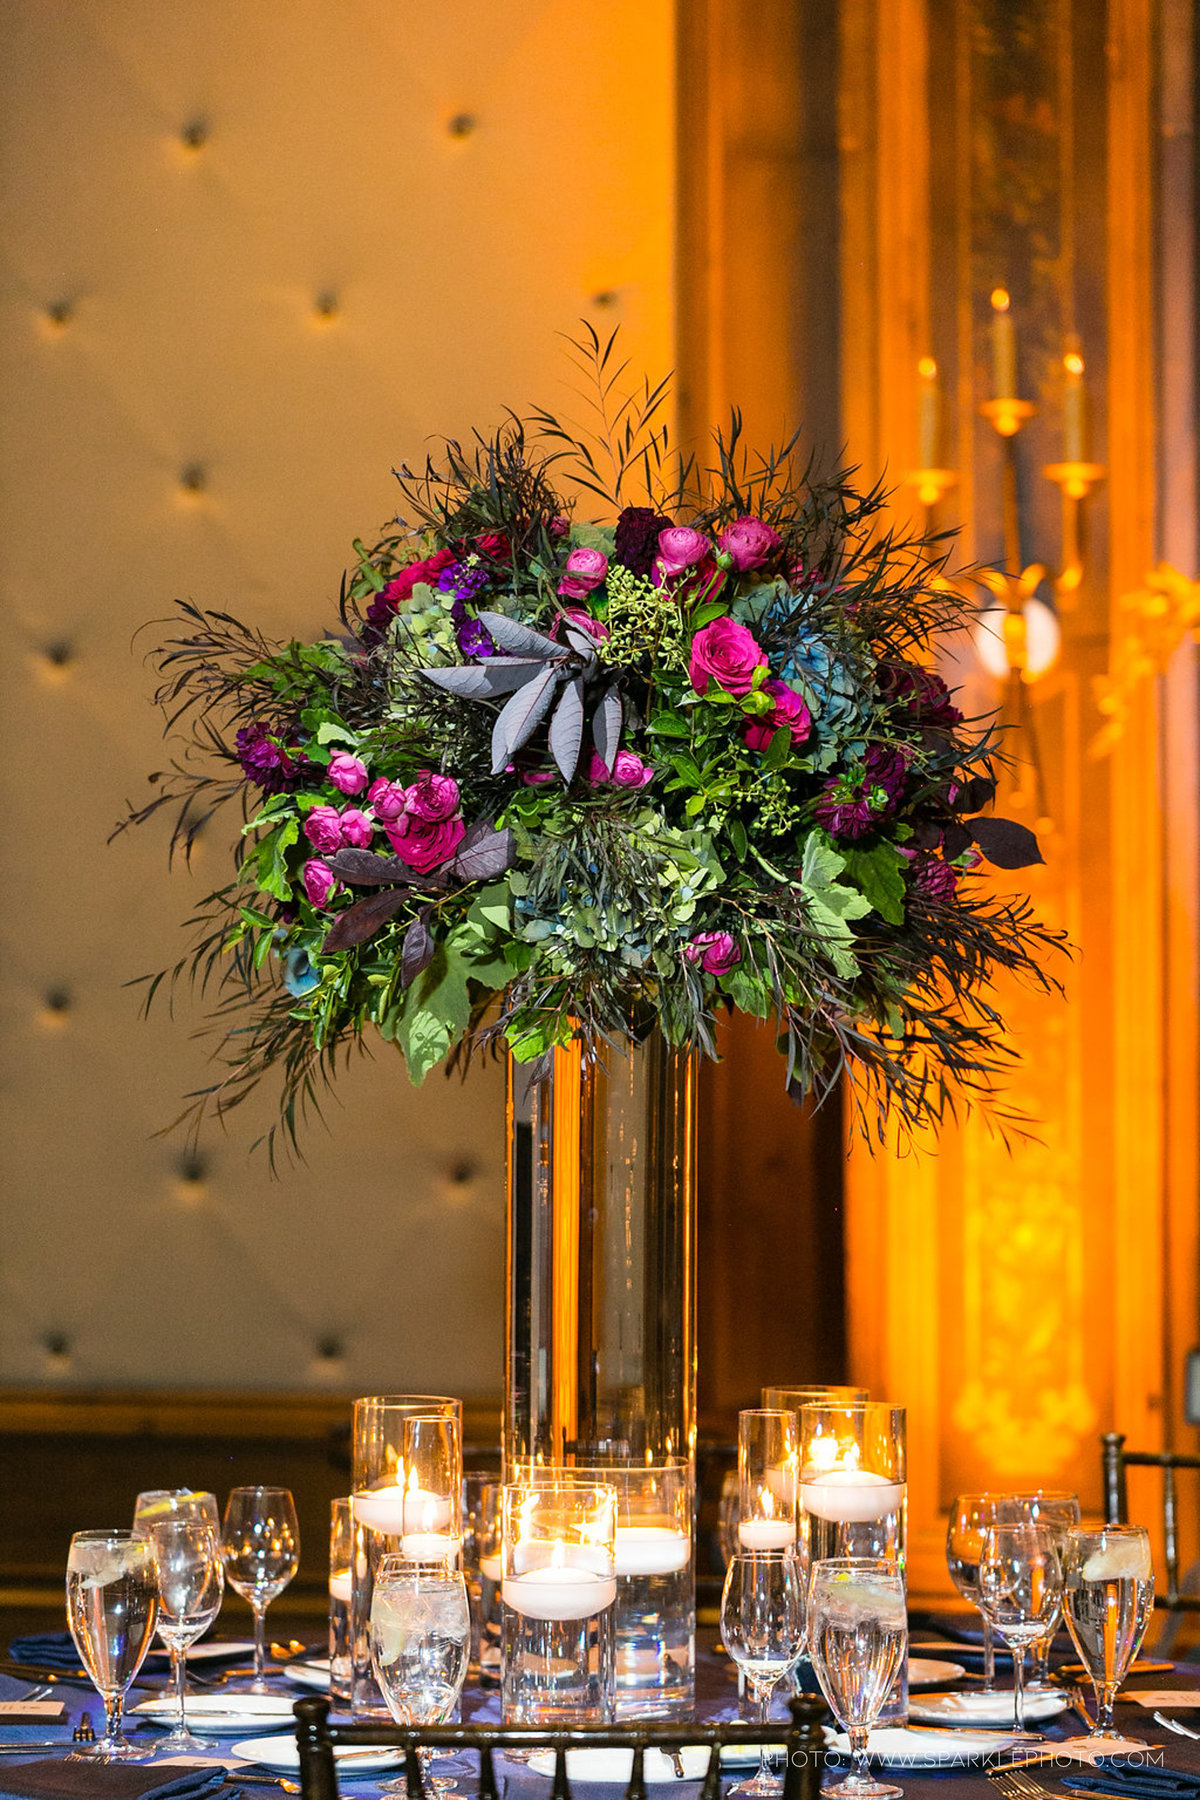 Utah Florist_Summer Weddings in Park City_Colorful Wedding_Luxe Mountain Weddings_Stein Eriksen Lodge Weddings_Artisan Bloom--120